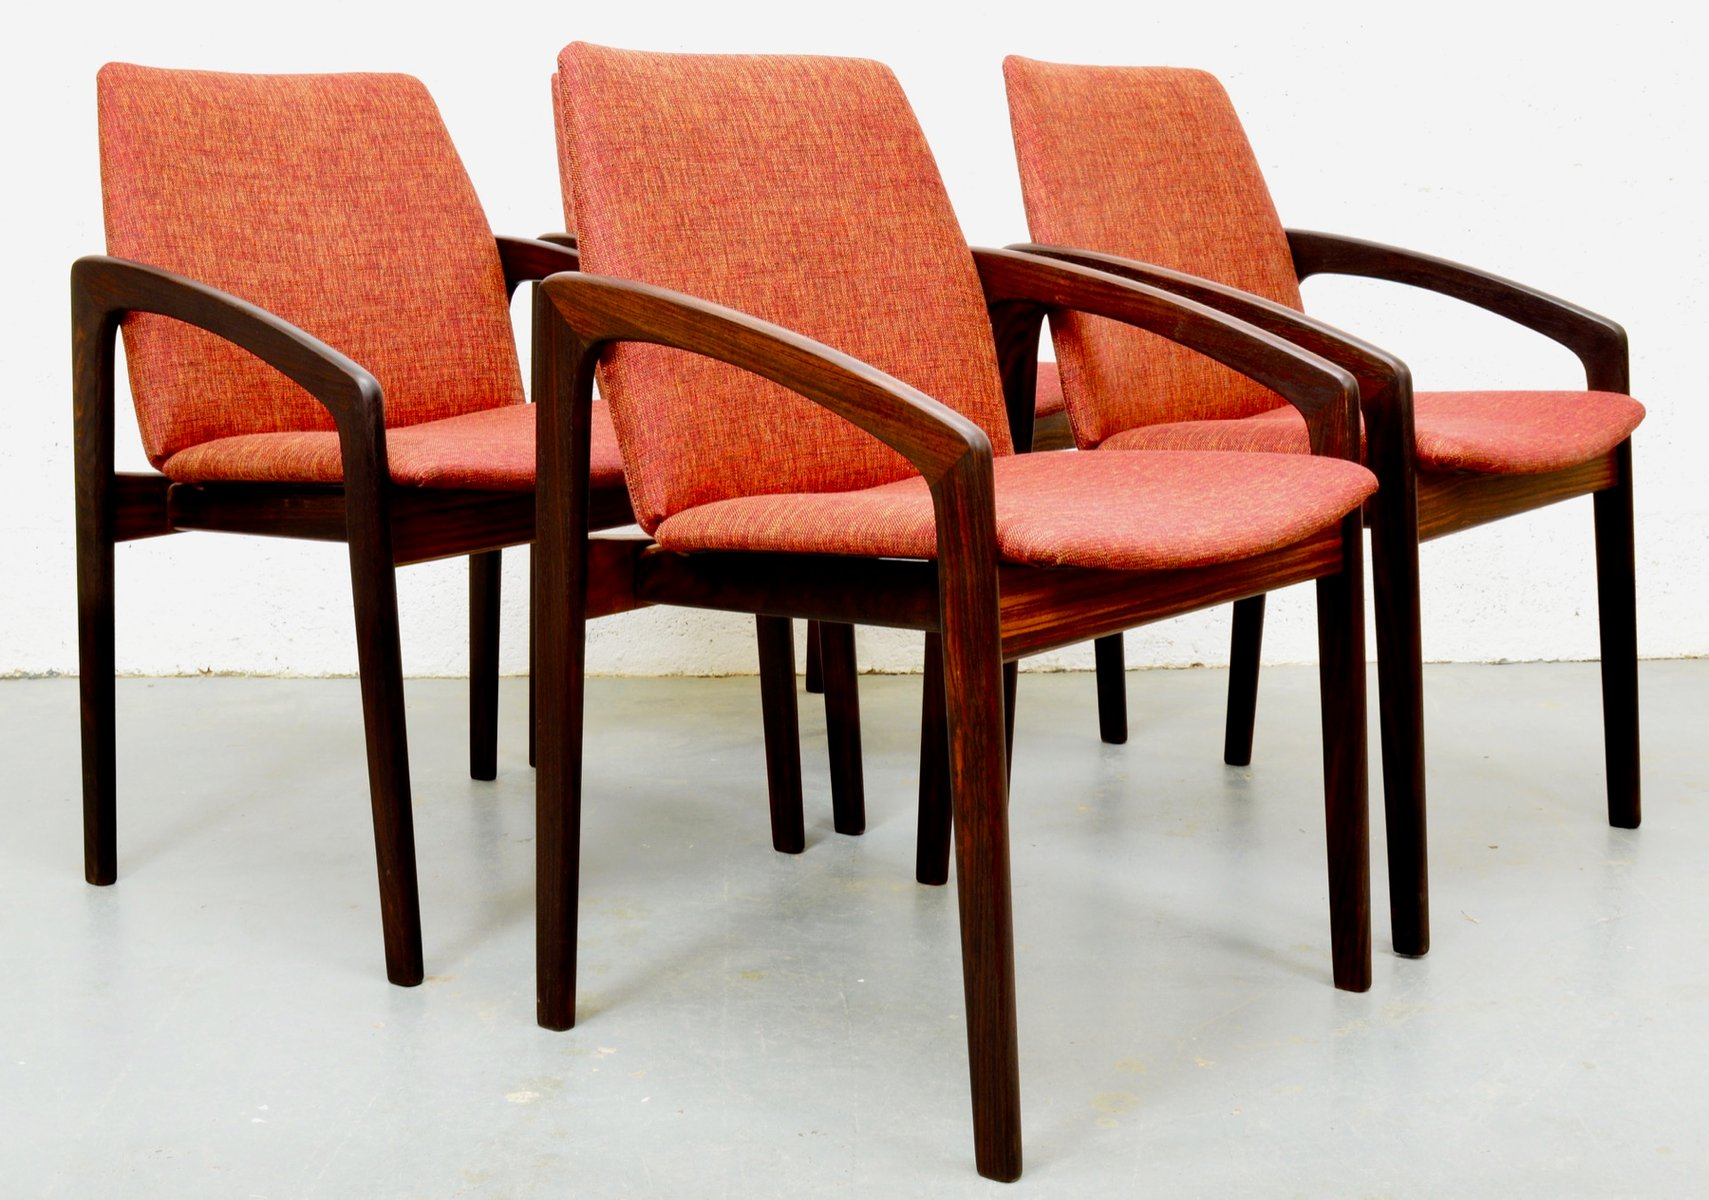 Mid Century Rosewood Danish Chairs By Kai Kristiansen For Korup Set Of 4 For Sale At Pamono